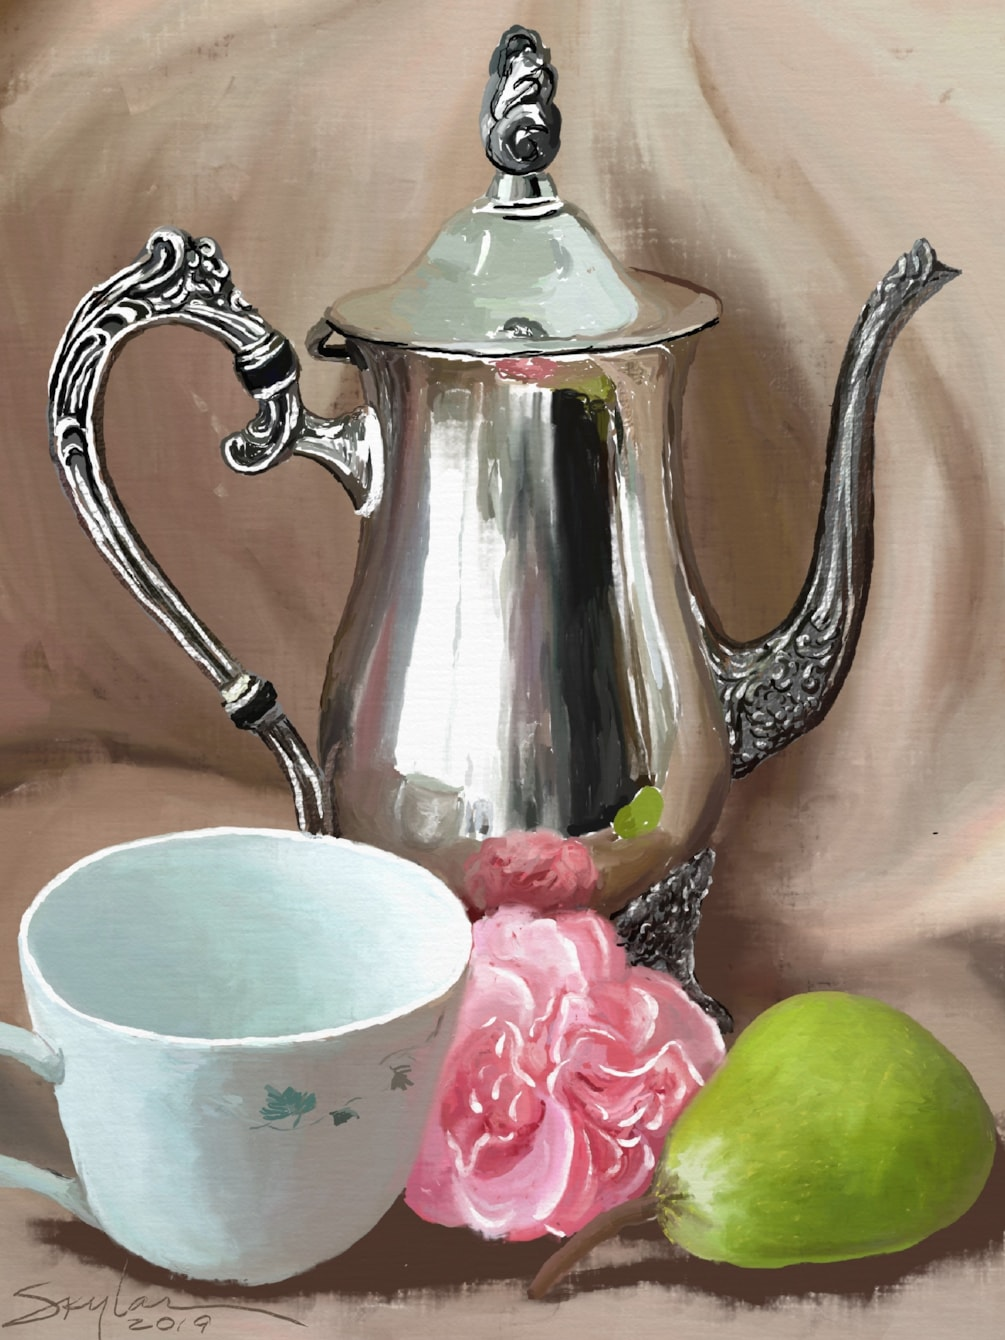 Pot & Cup with carnation and pear.